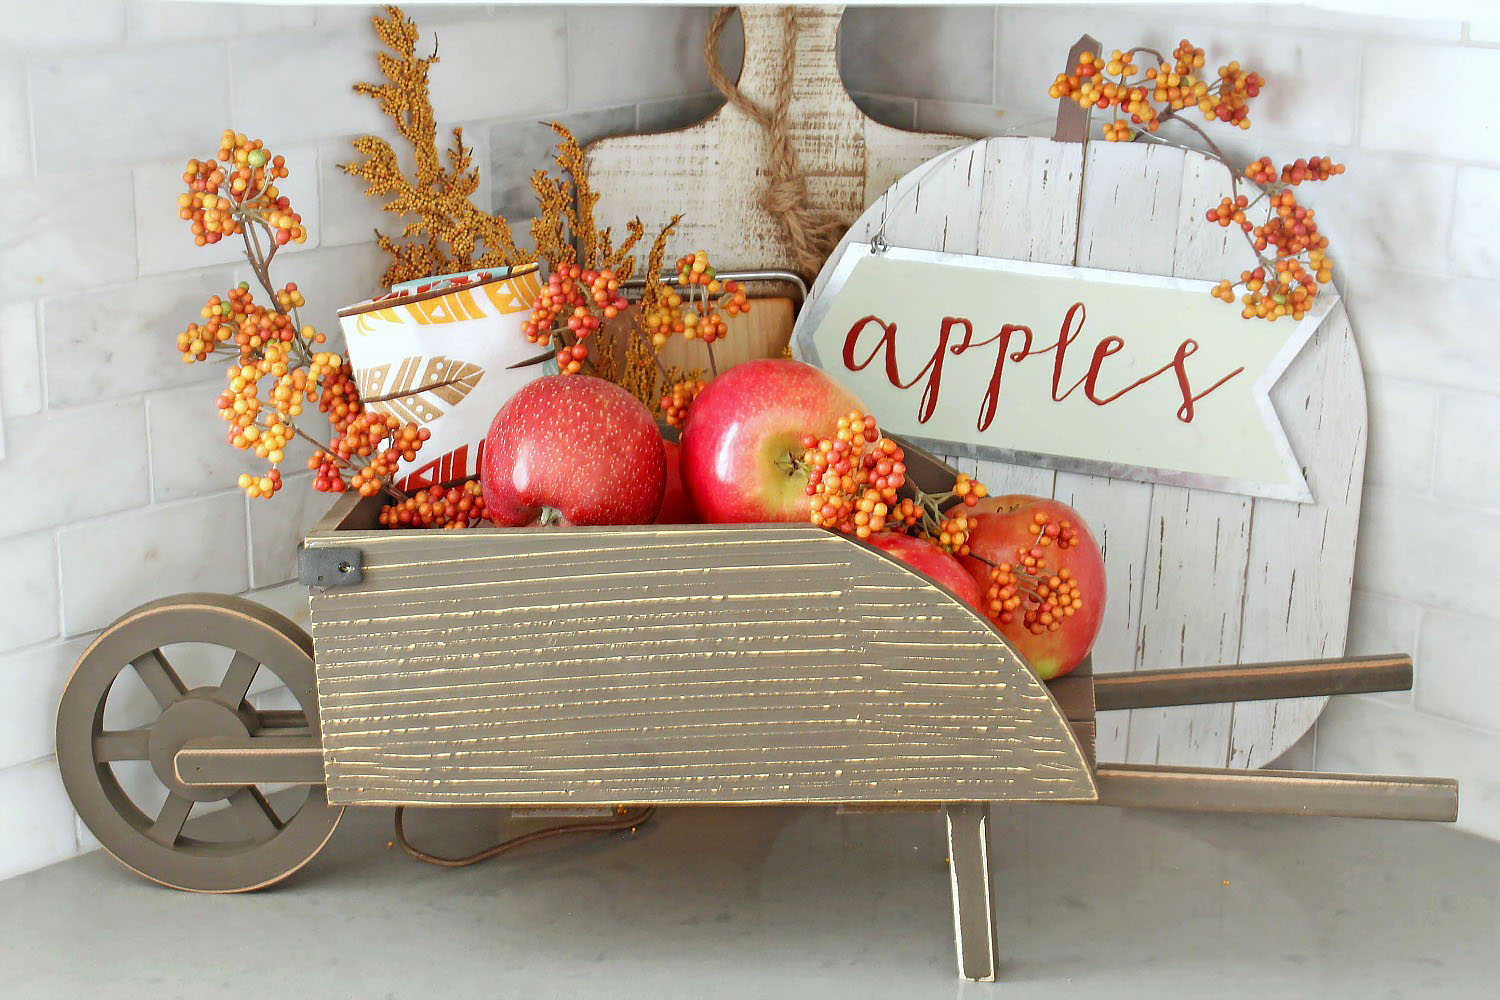 Easy fall kitchen decorating ideas. Simple ways to add some fall to your kitchen decor!